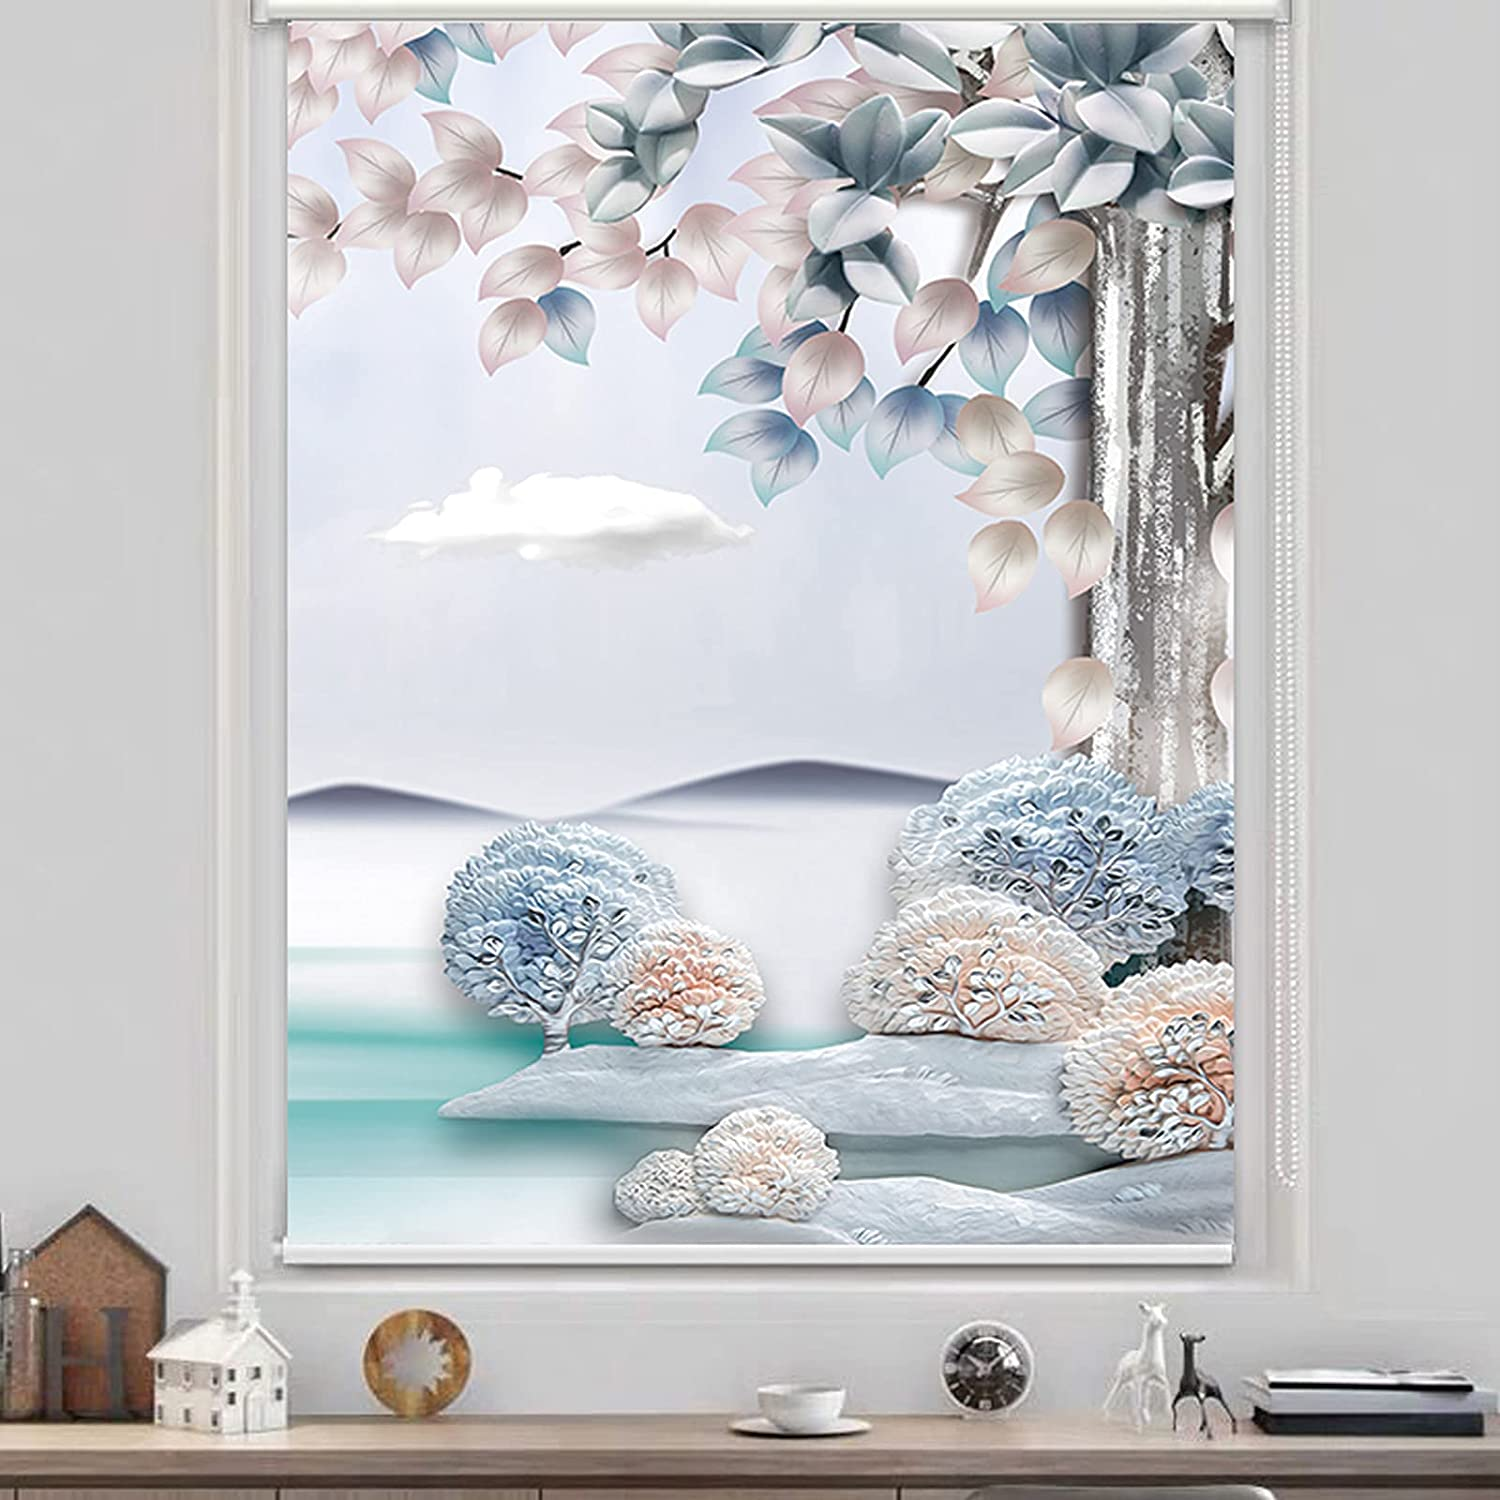 ZWLI Window Blind Manufacturer regenerated product Roller Complete Free Shipping UV Blackout 100% Shades